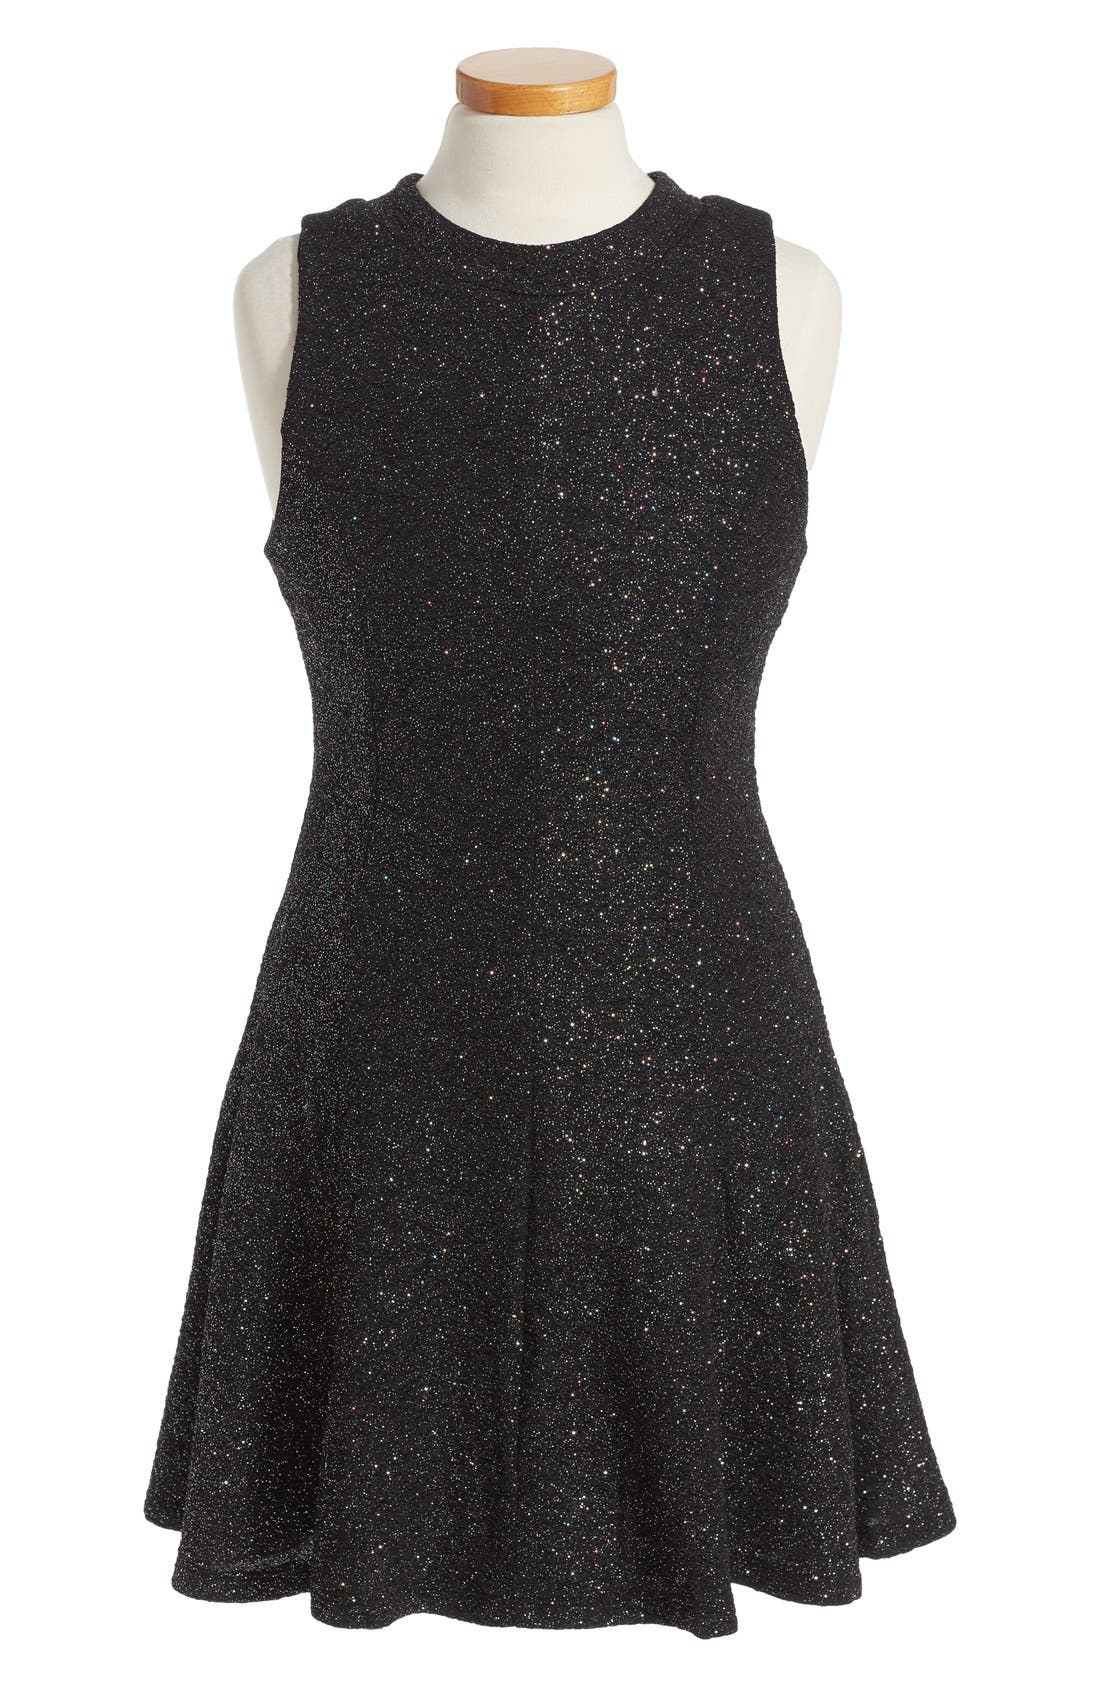 Main Image - Zunie Shimmer Swing Dress (Big Girls)